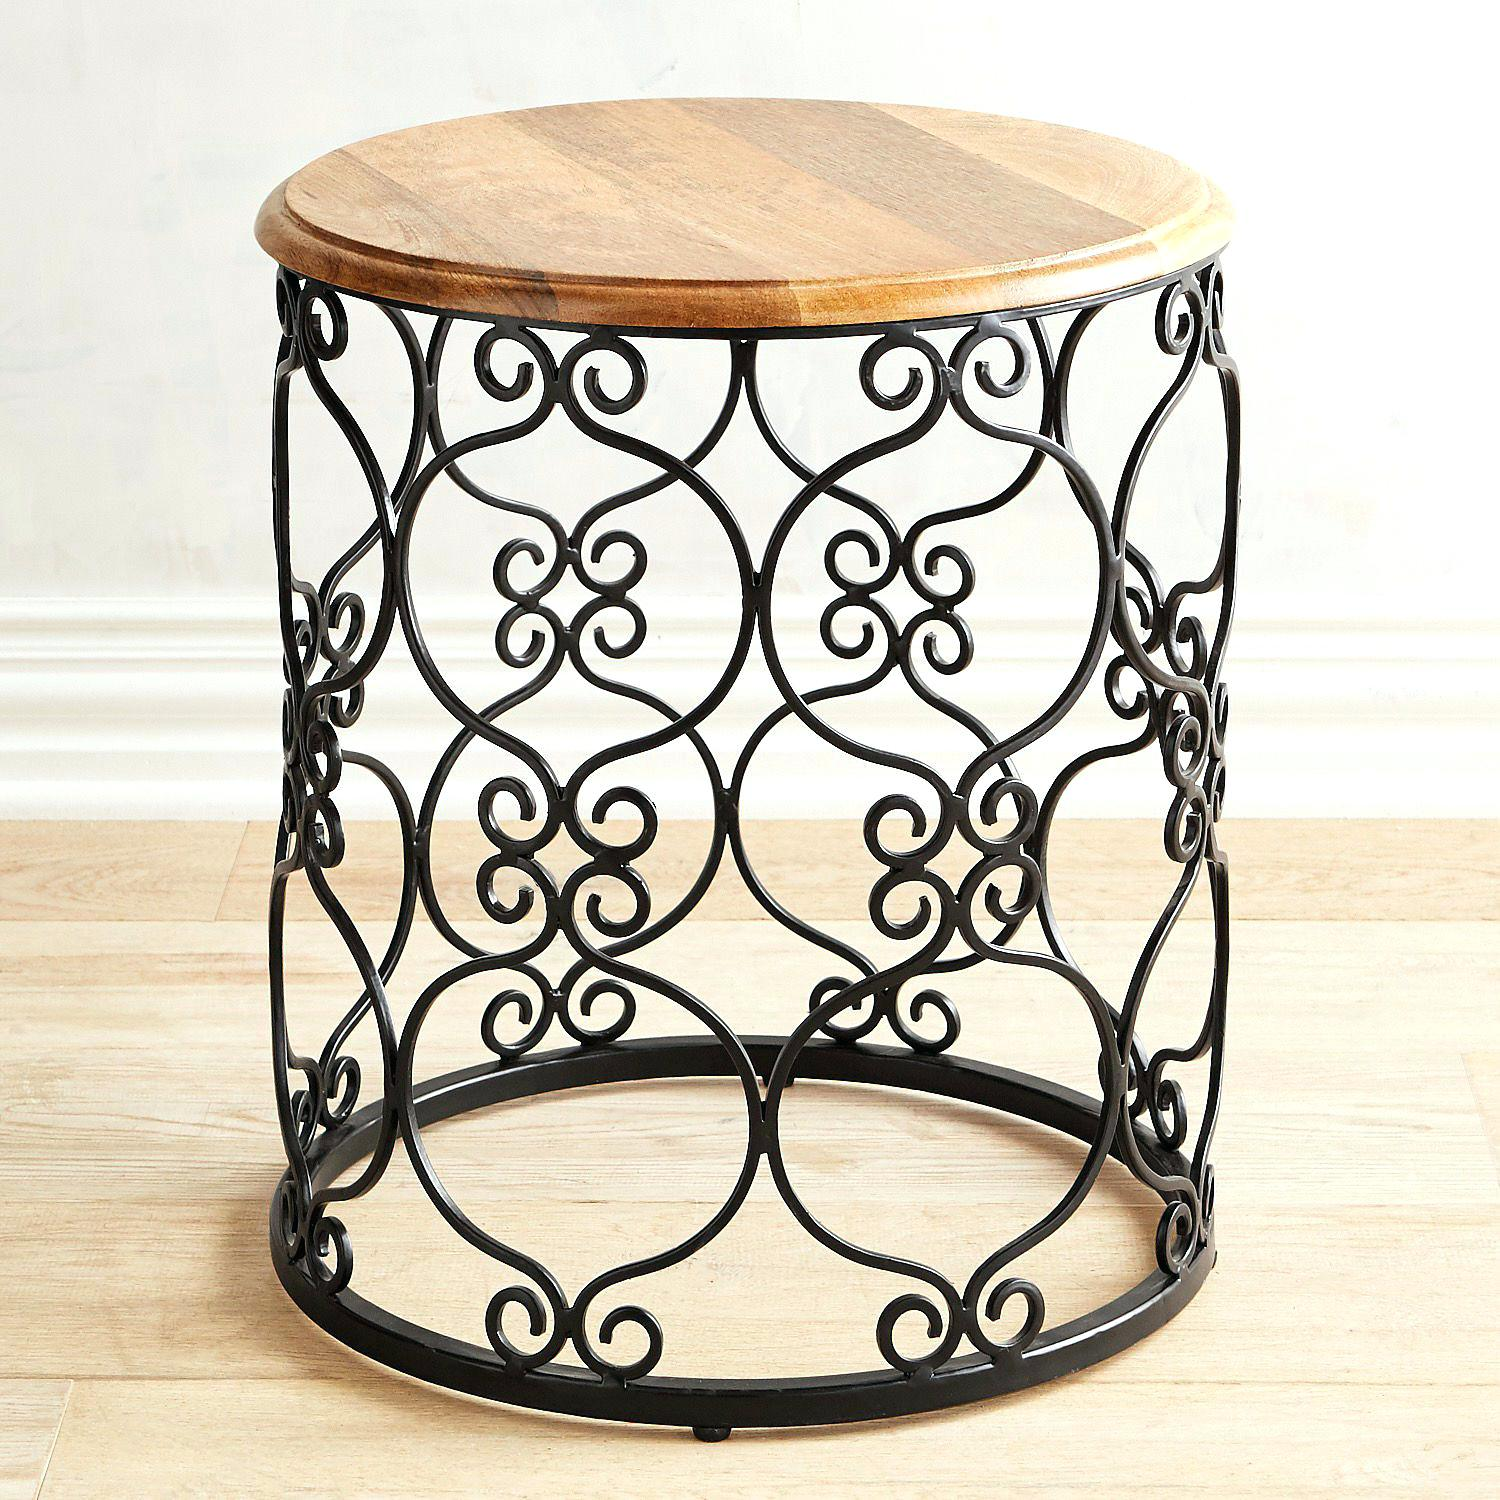 fretwork accent table grey topaz coffee tables target magnificent small round best ideas threshold yellow short furniture legs bedside west elm rabbit lamp patio conversation sets